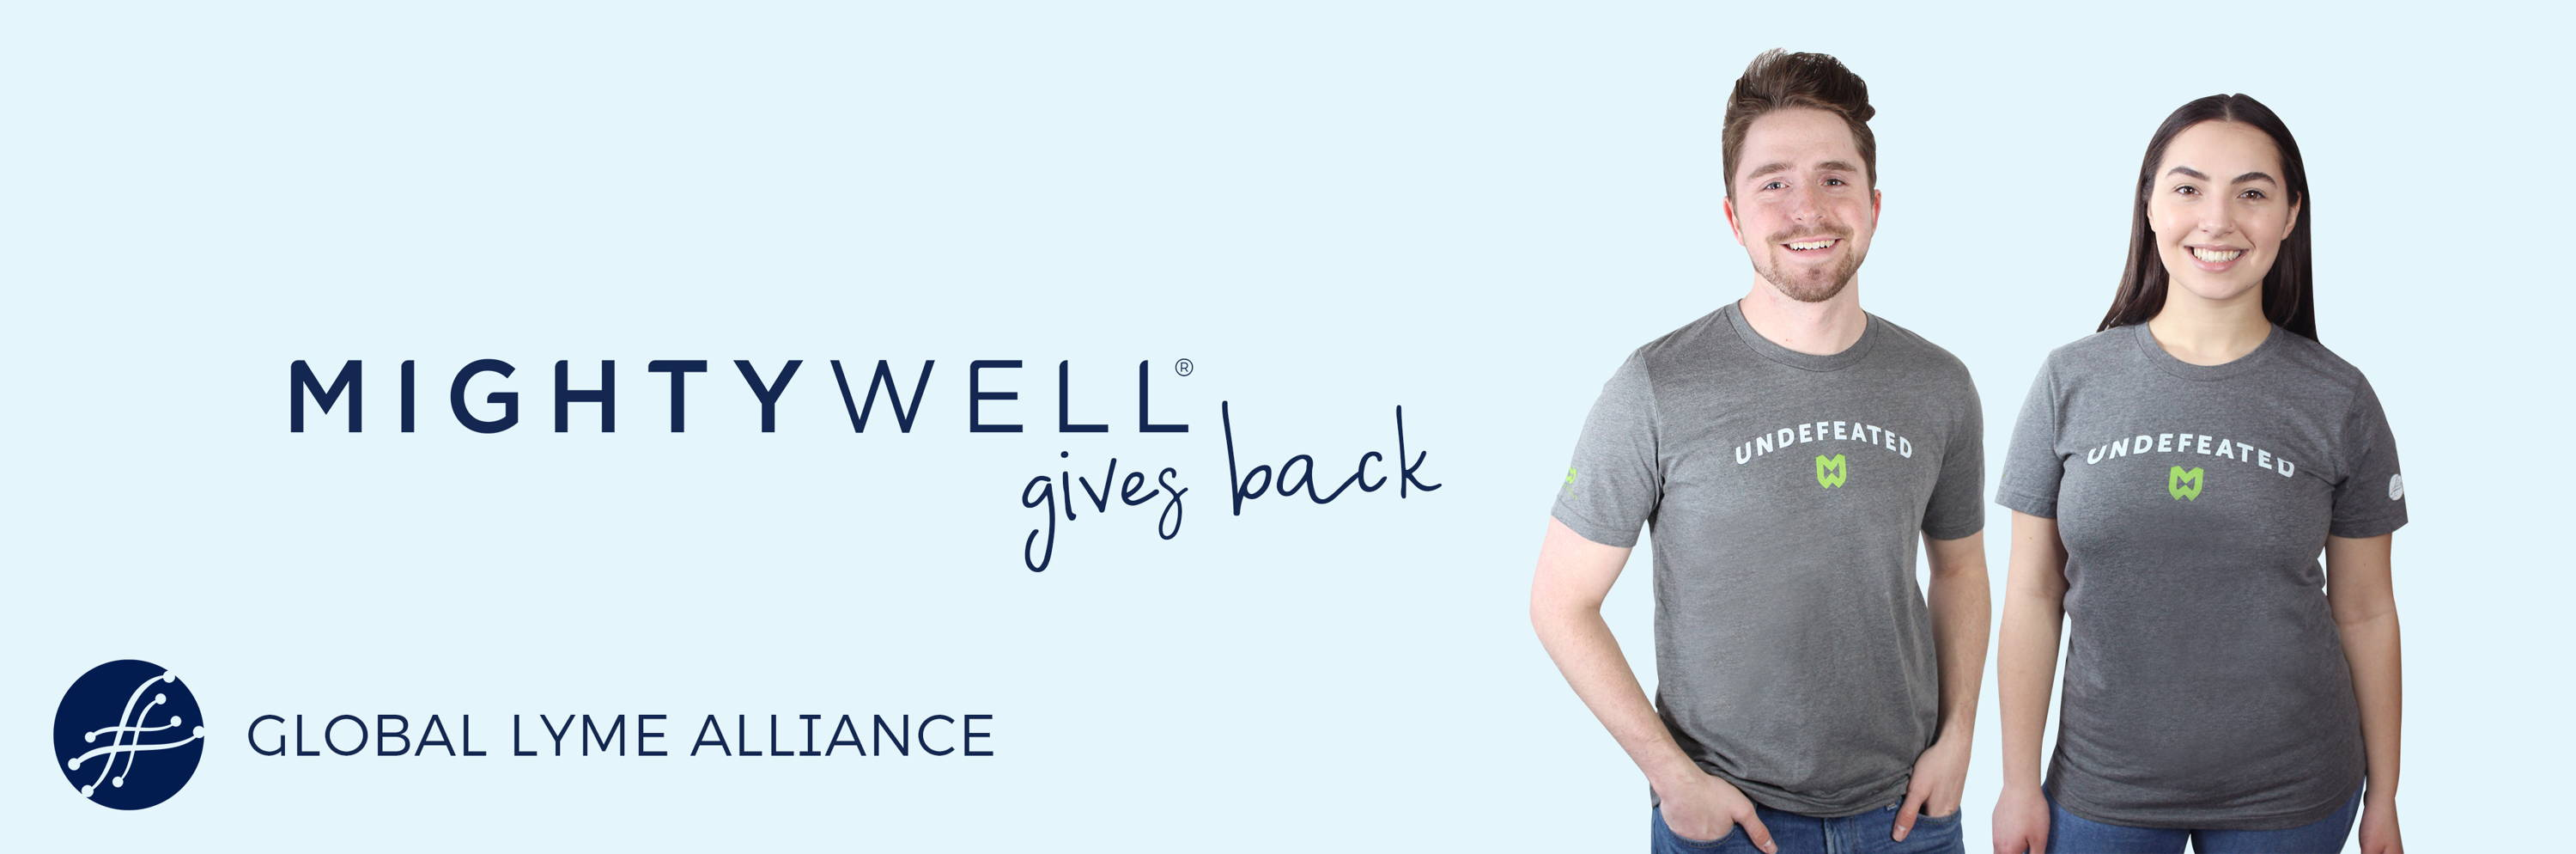 Mighty Well Gives Back to the Global Lyme Alliance